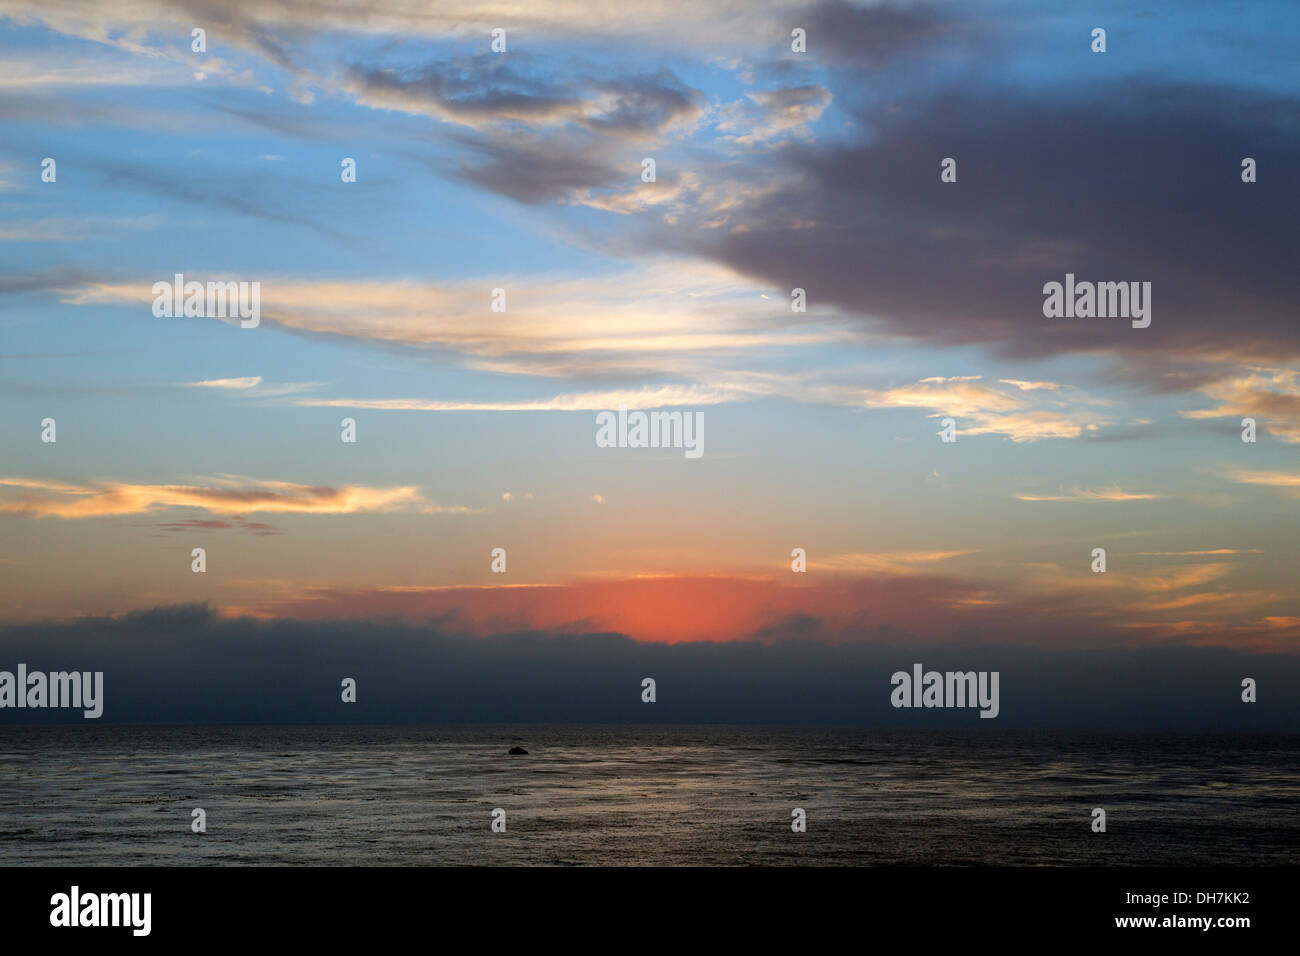 Red Afterglow Sunset - Stock Image